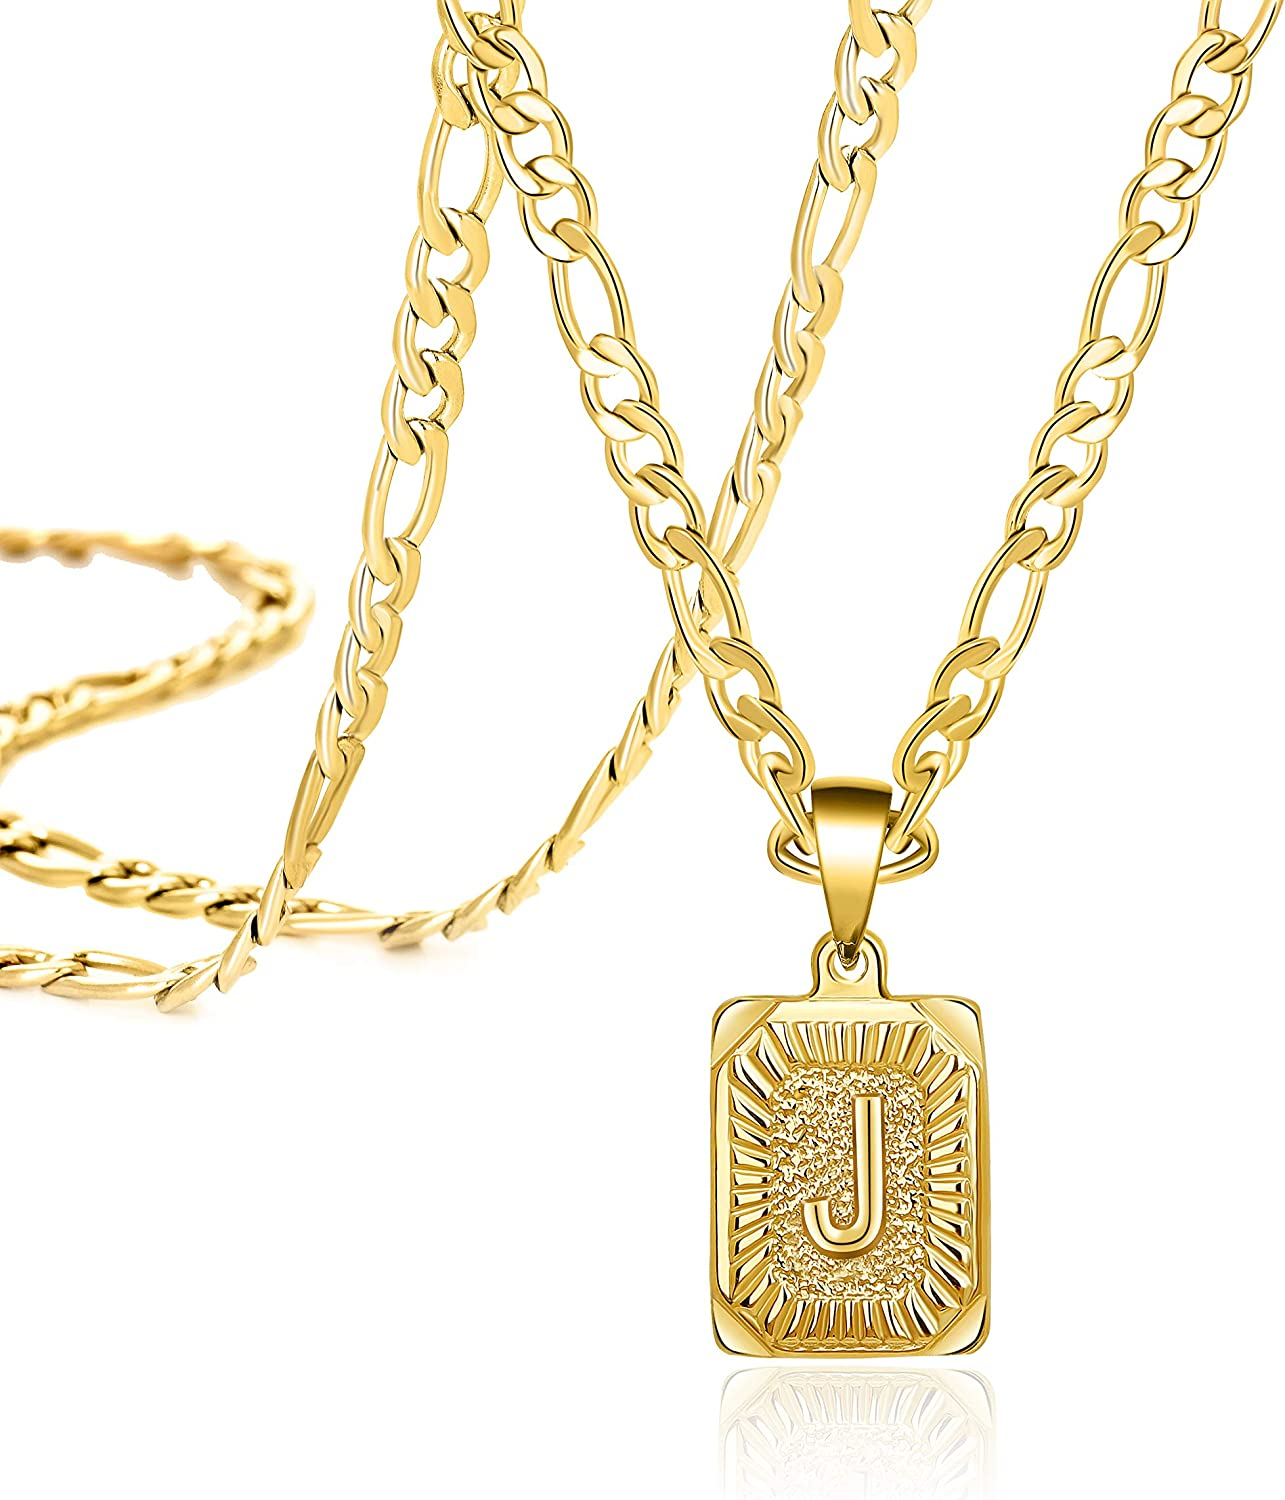 JoycuFF 18K Gold Initial Necklaces for Max 74% OFF Women Men Ranking TOP12 Girls Best Teen